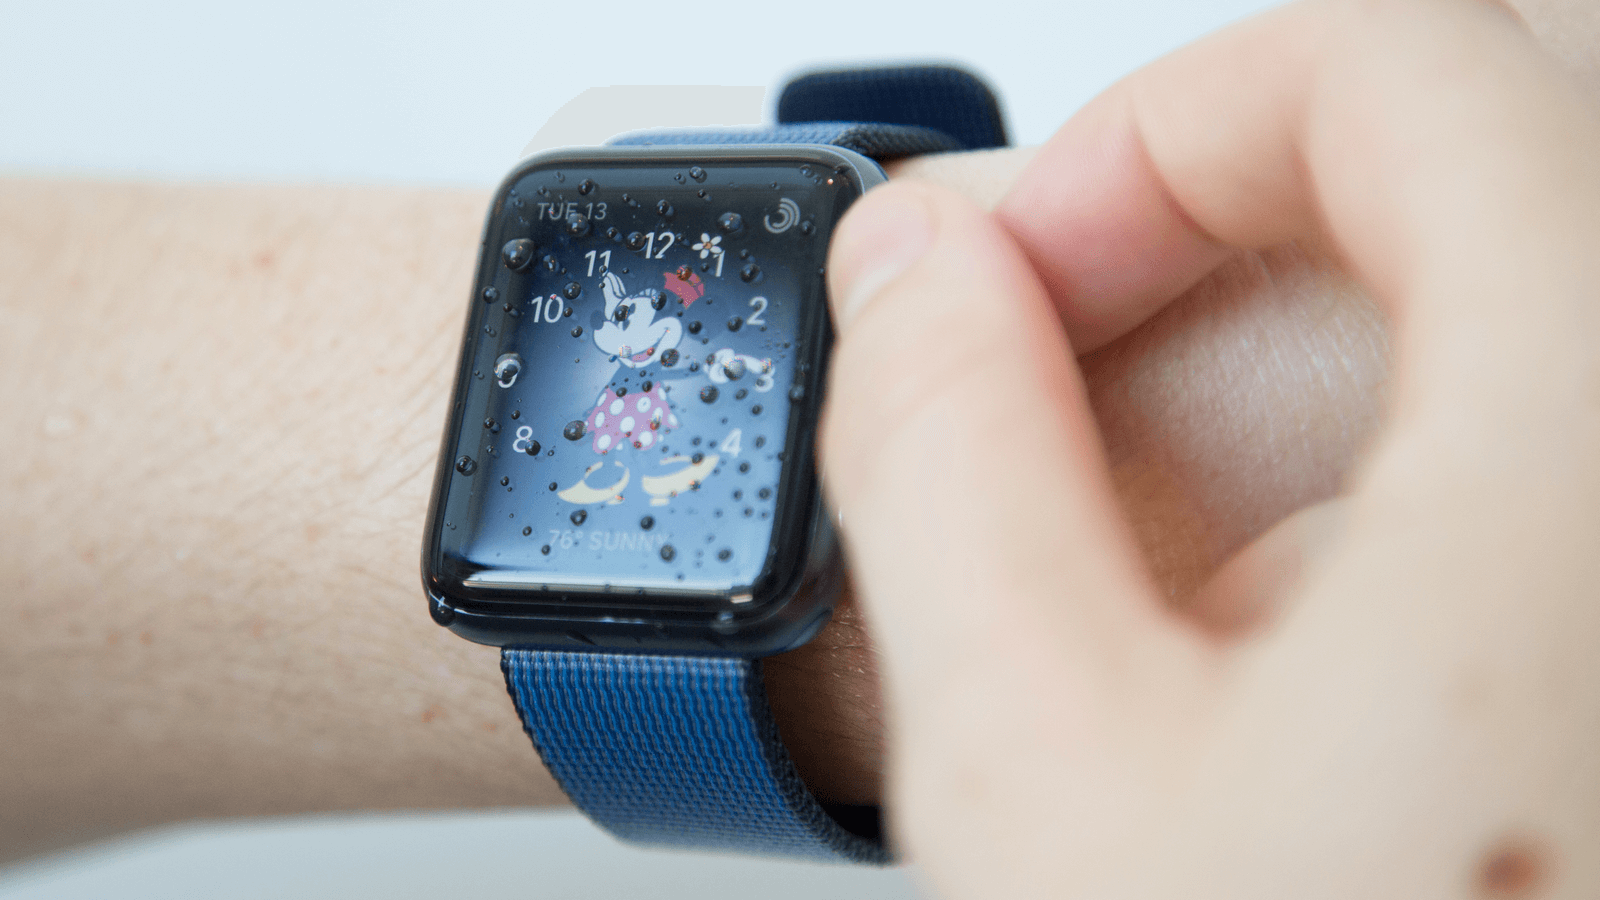 How to transfer an important function of the Apple Watch 2 for iPhone